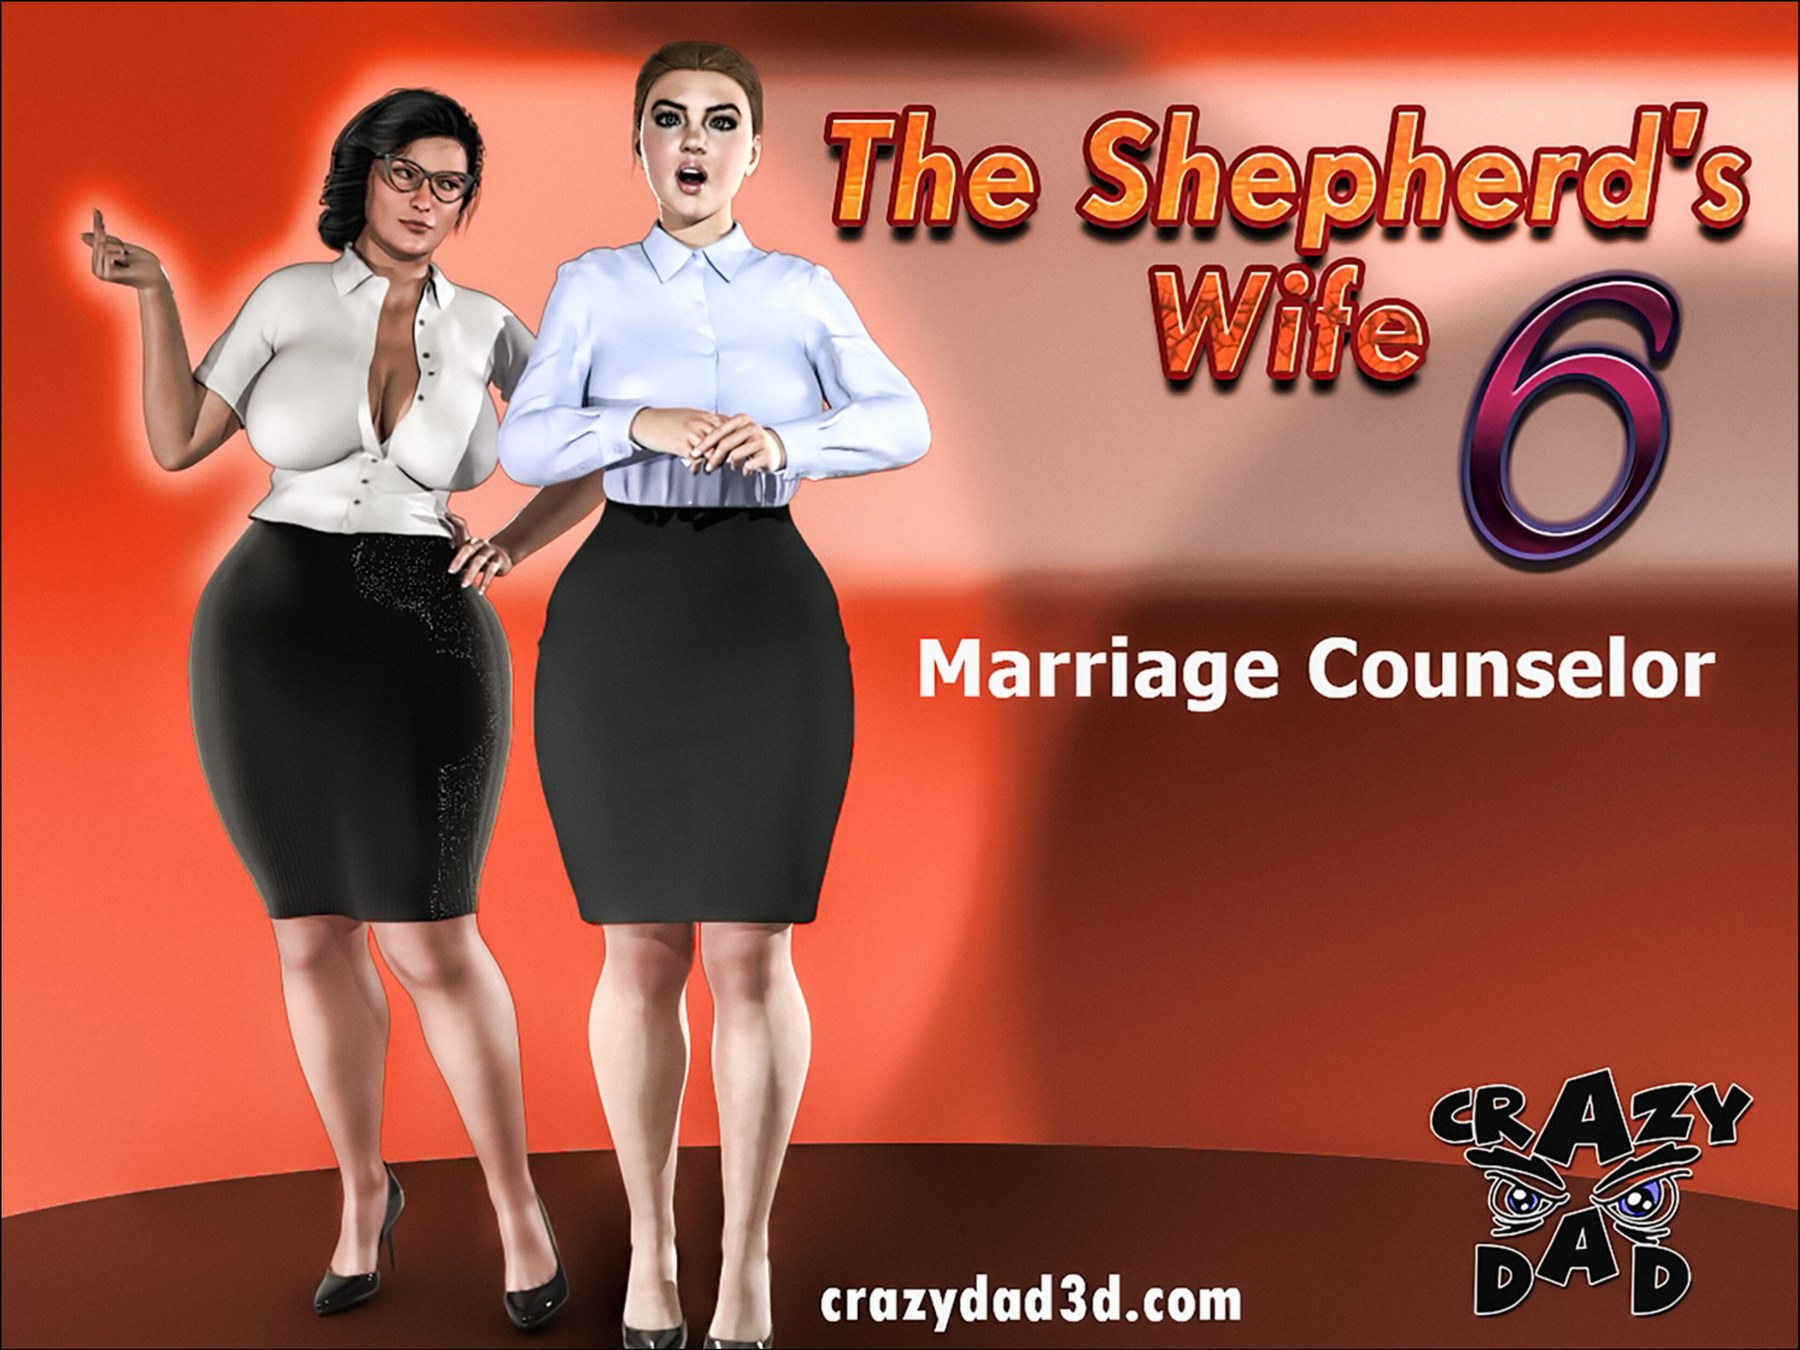 The-Shepherd's-Wife-6